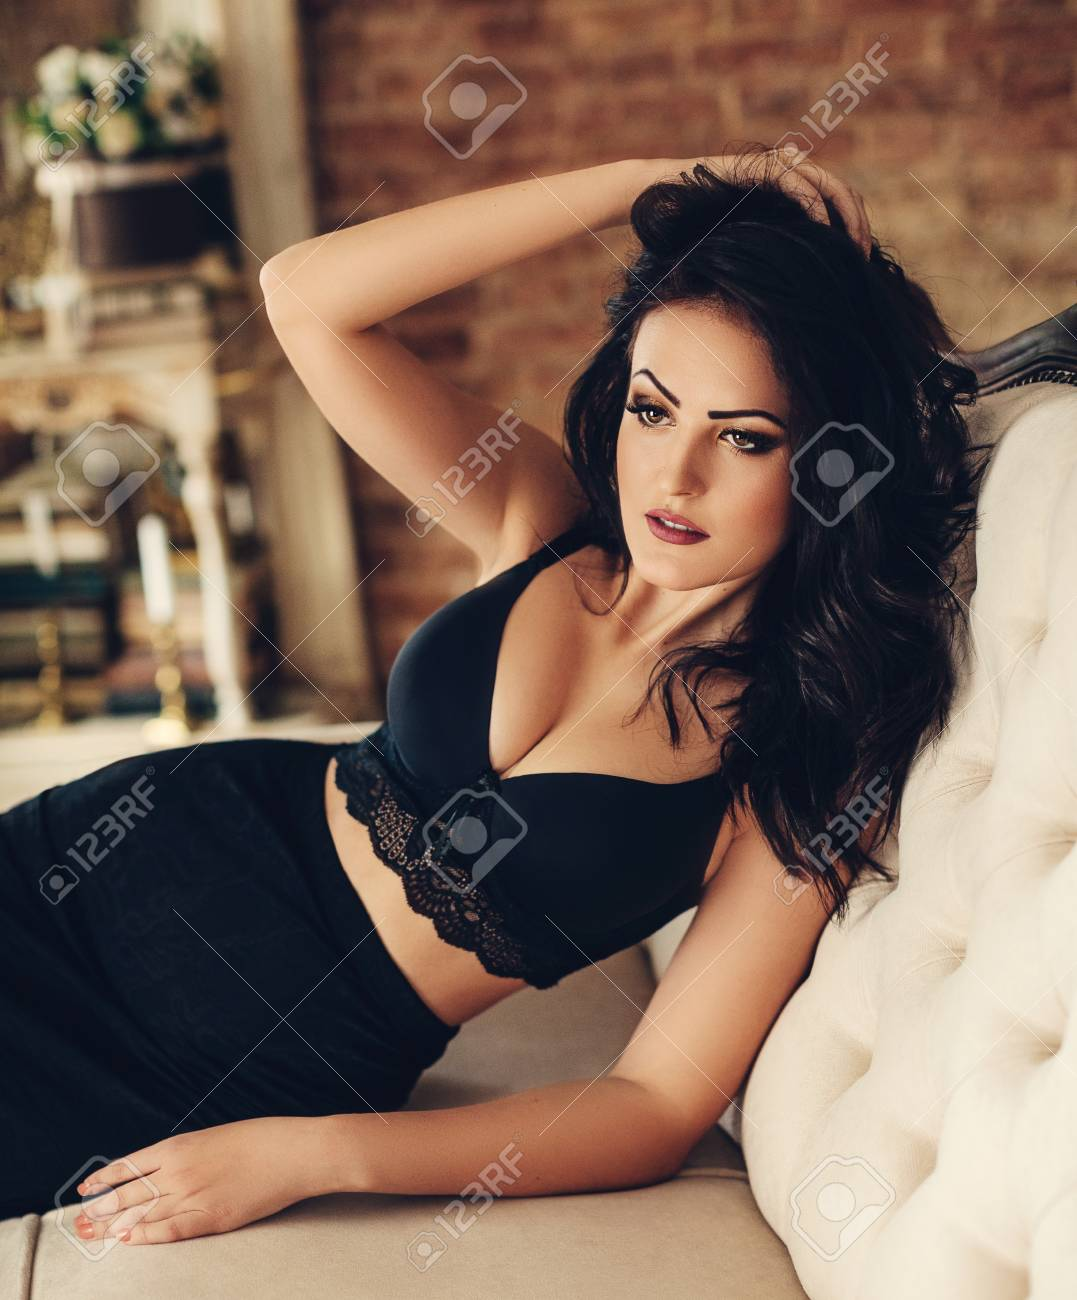 af6f0553db1 Sexy beautiful brunette woman in black underclothes Stock Photo - 110578086